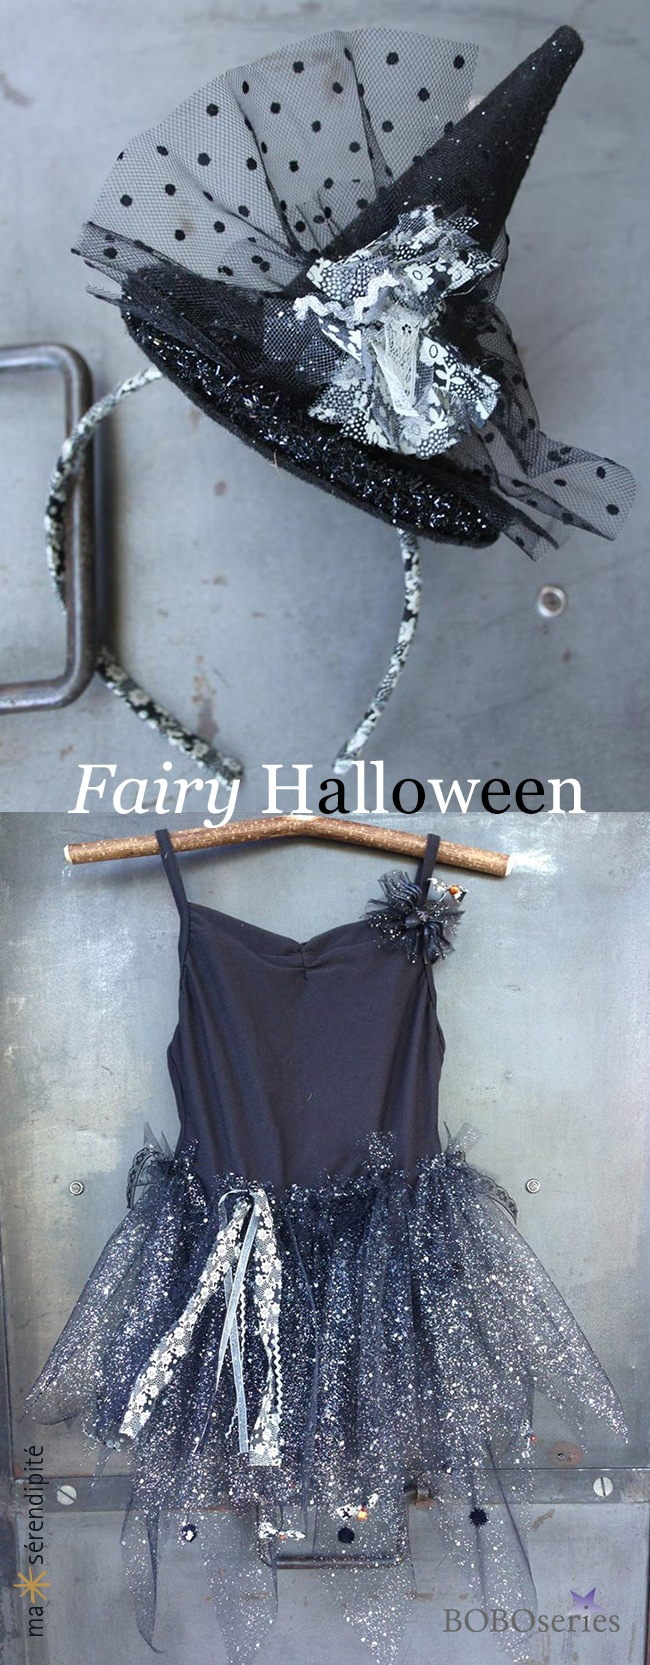 Halloween_Selection_BOBOseries